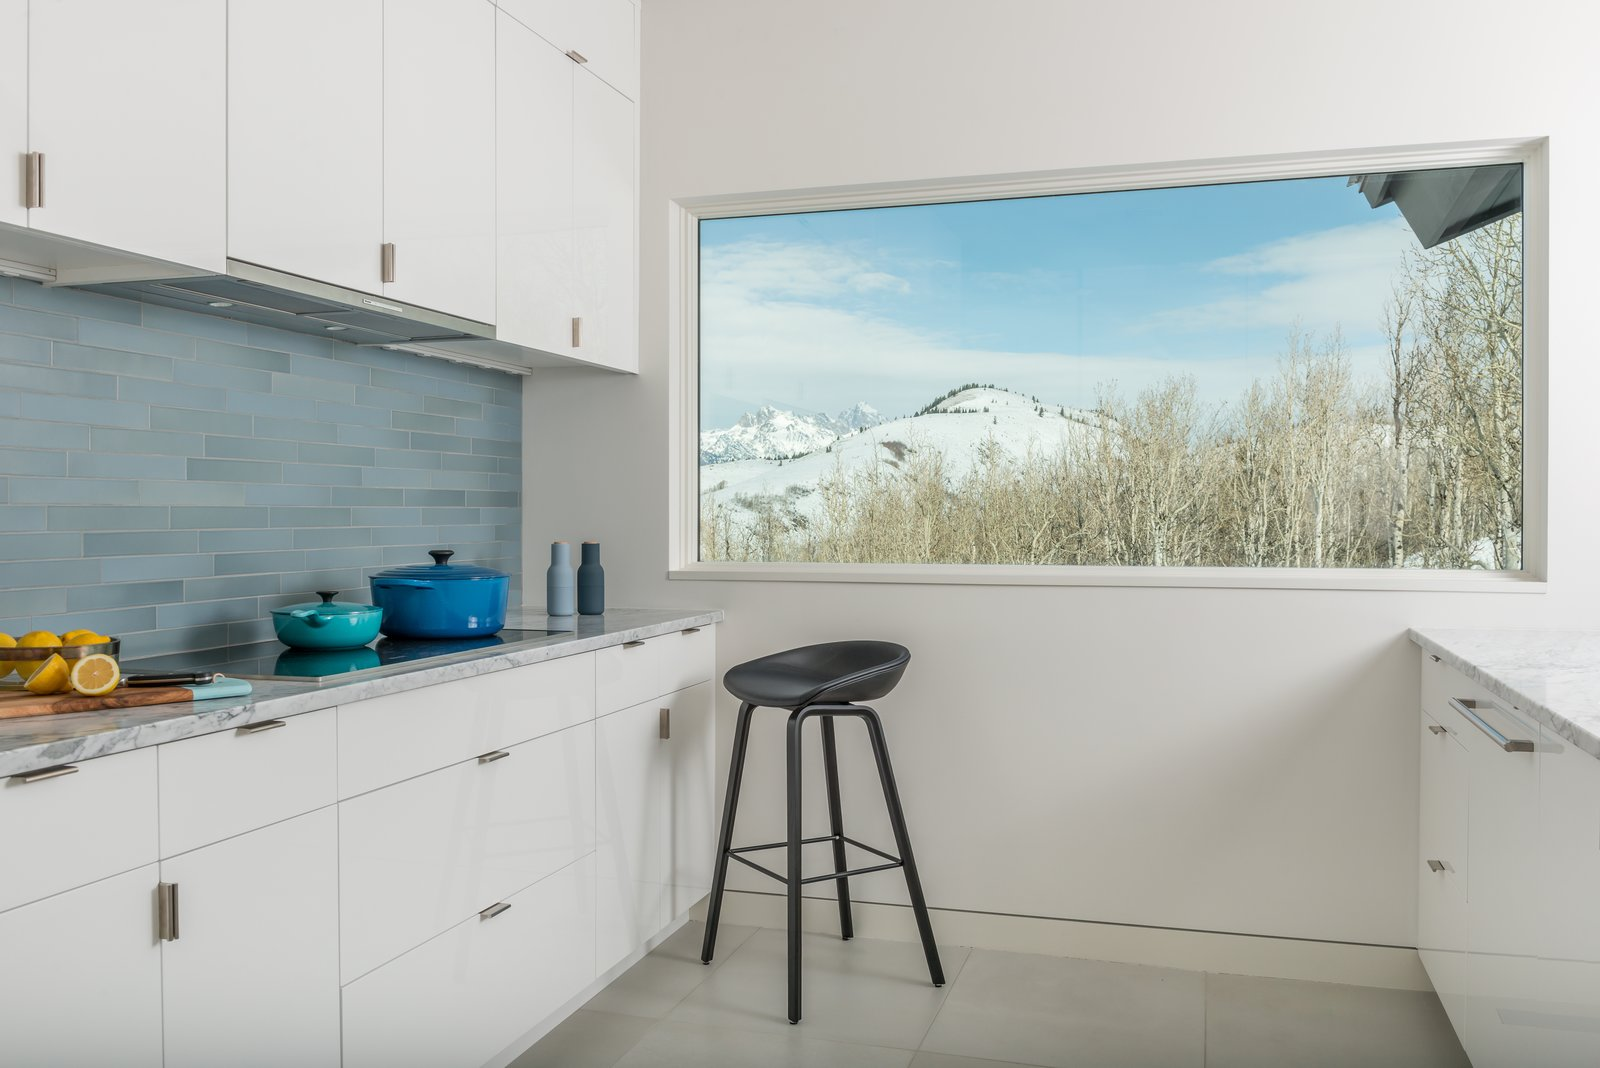 Honed, white Carrera marble countertops blend with exterior views to the Teton Mountain Range.  San Francisco Meets Jackson Hole in a Modern Renovation by Carney Logan Burke Architects